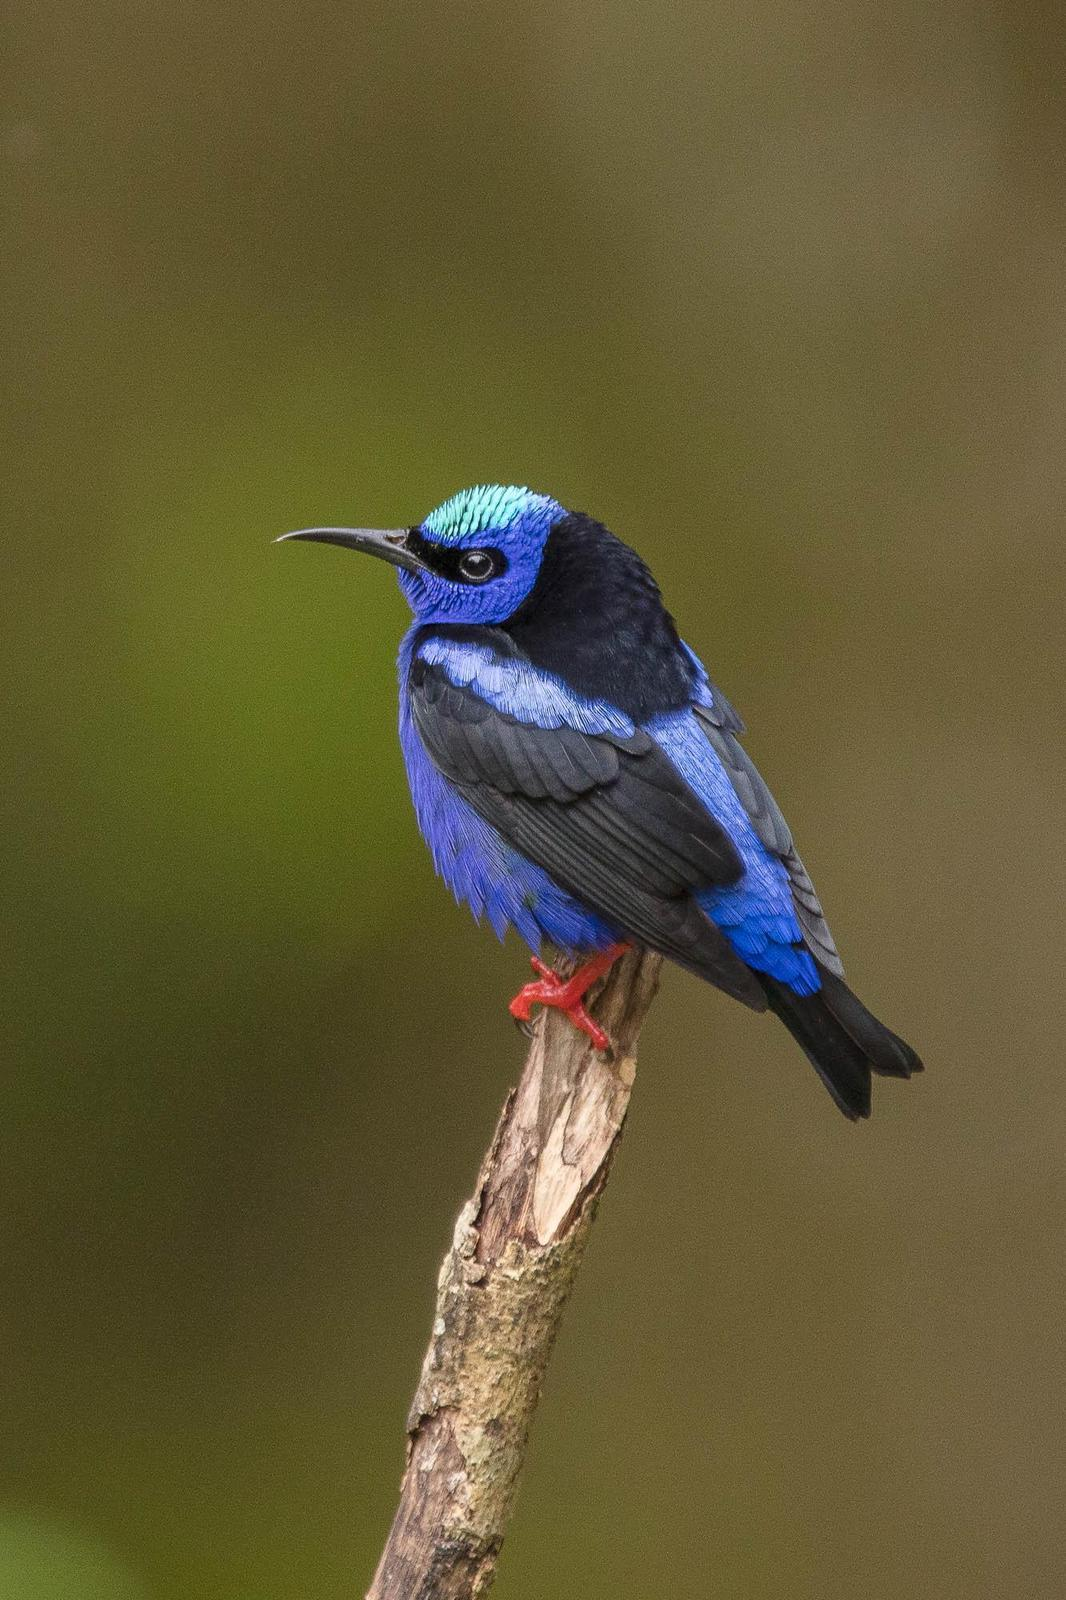 Red-legged Honeycreeper Photo by Denis Rivard